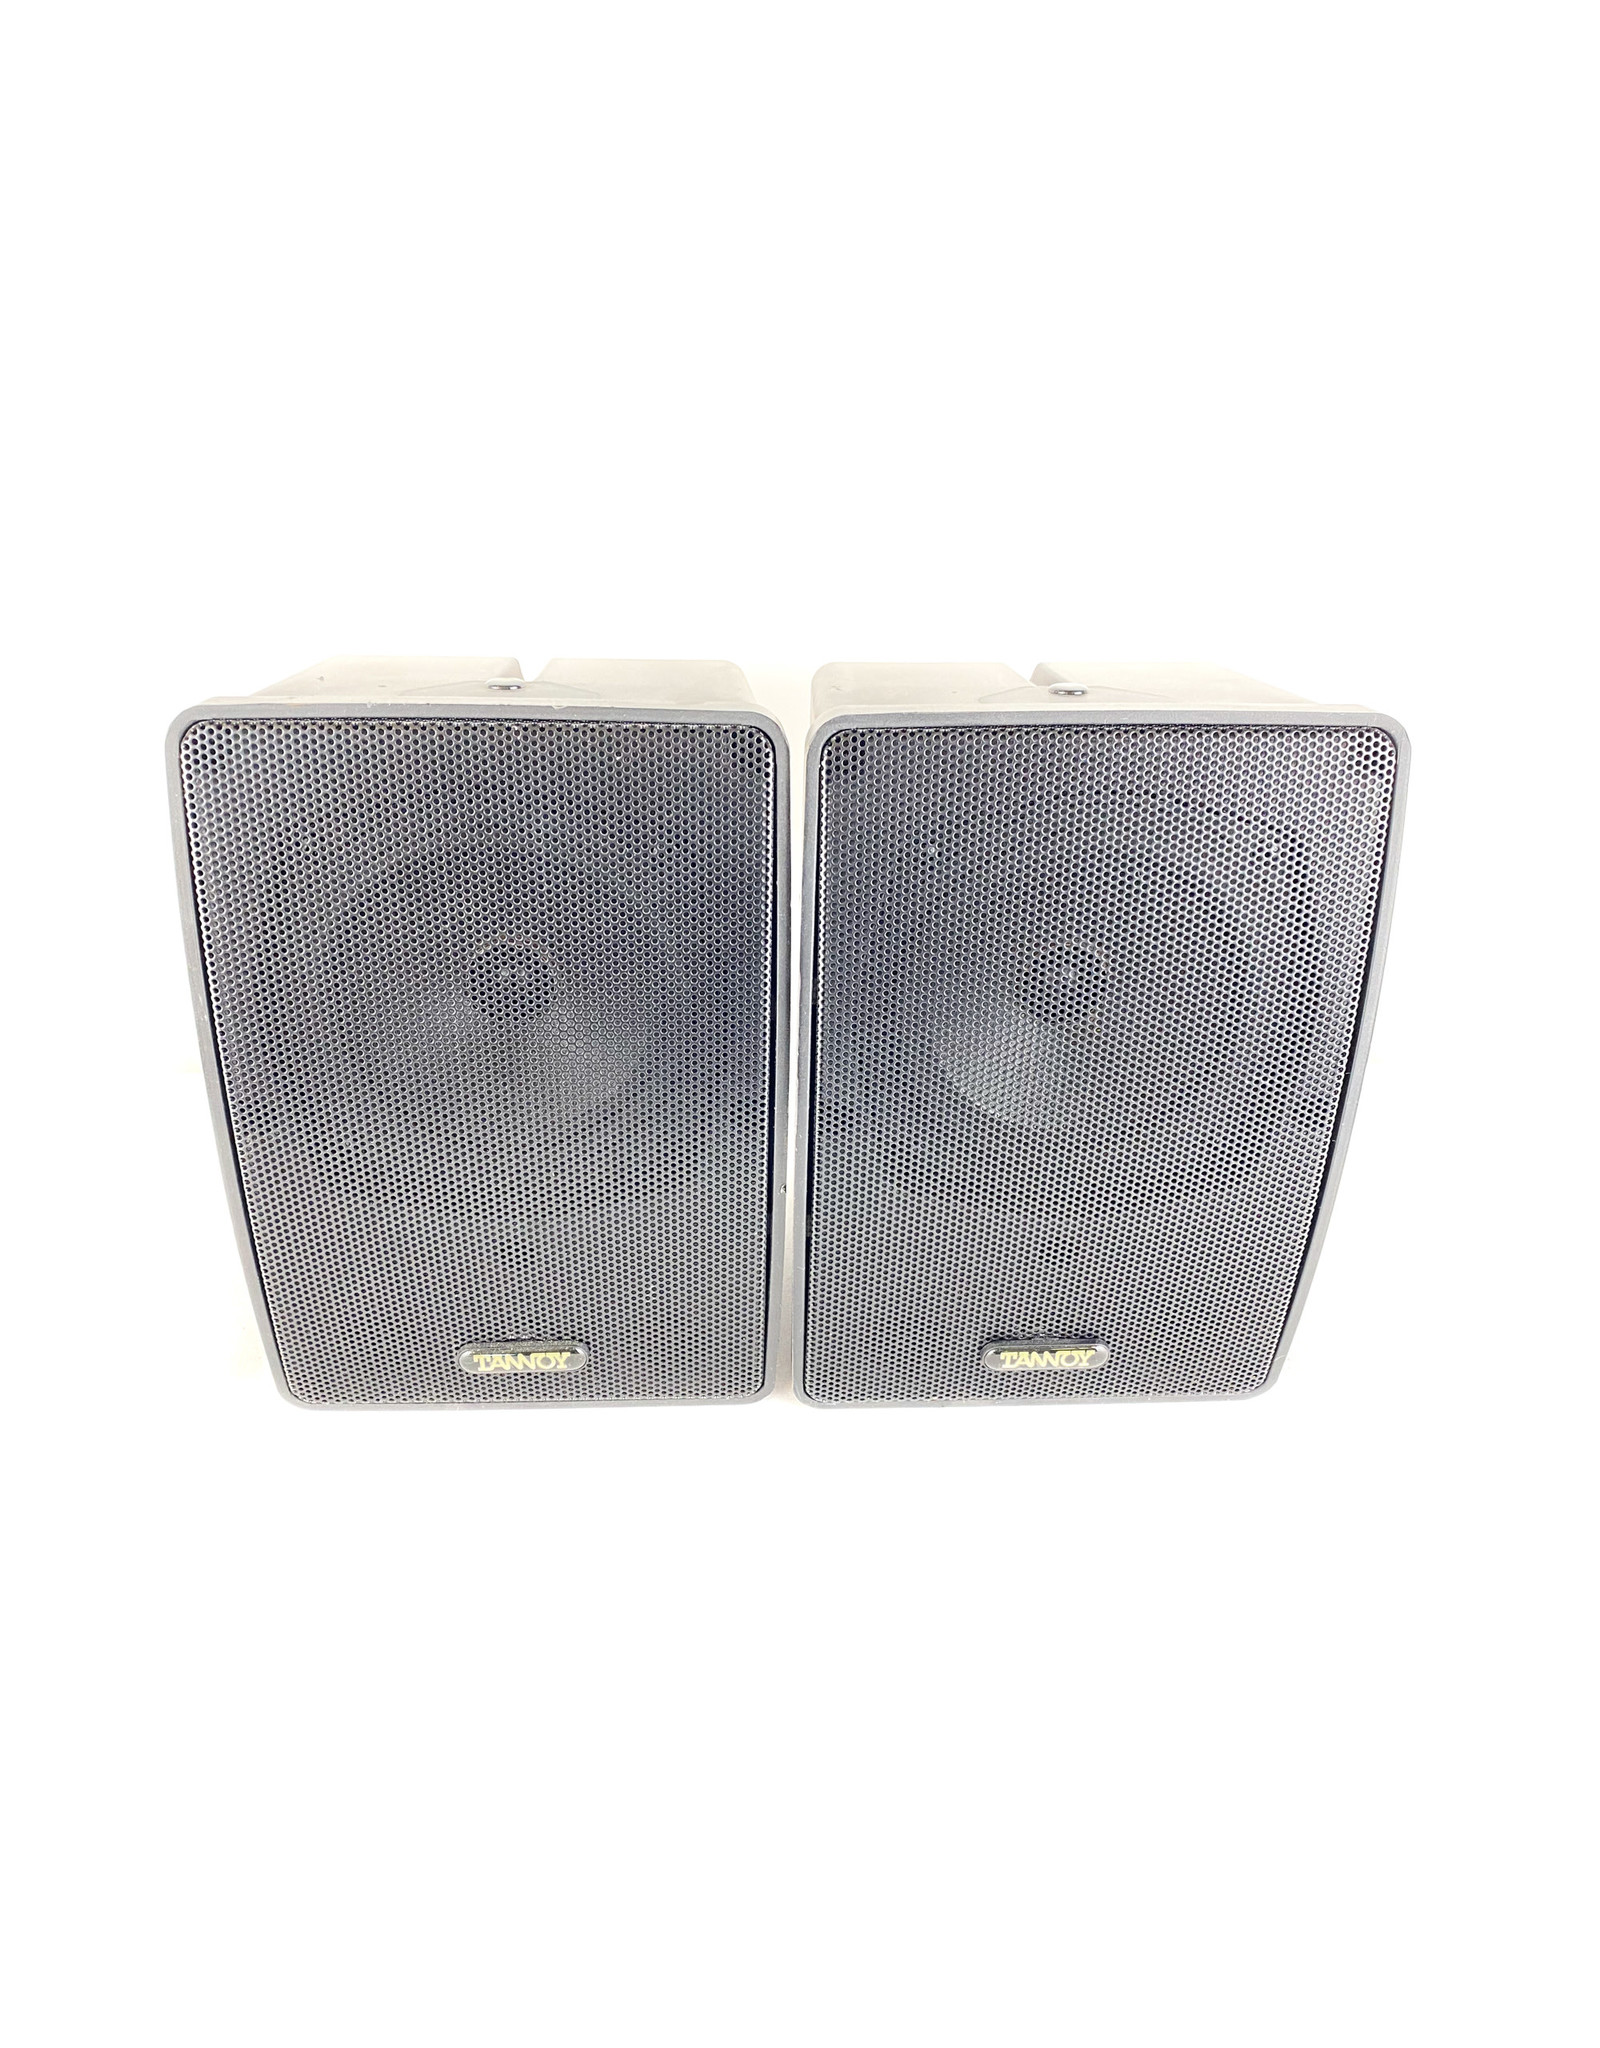 Tannoy Tannoy i5 AW Indoor/Outdoor Speakers Black USED